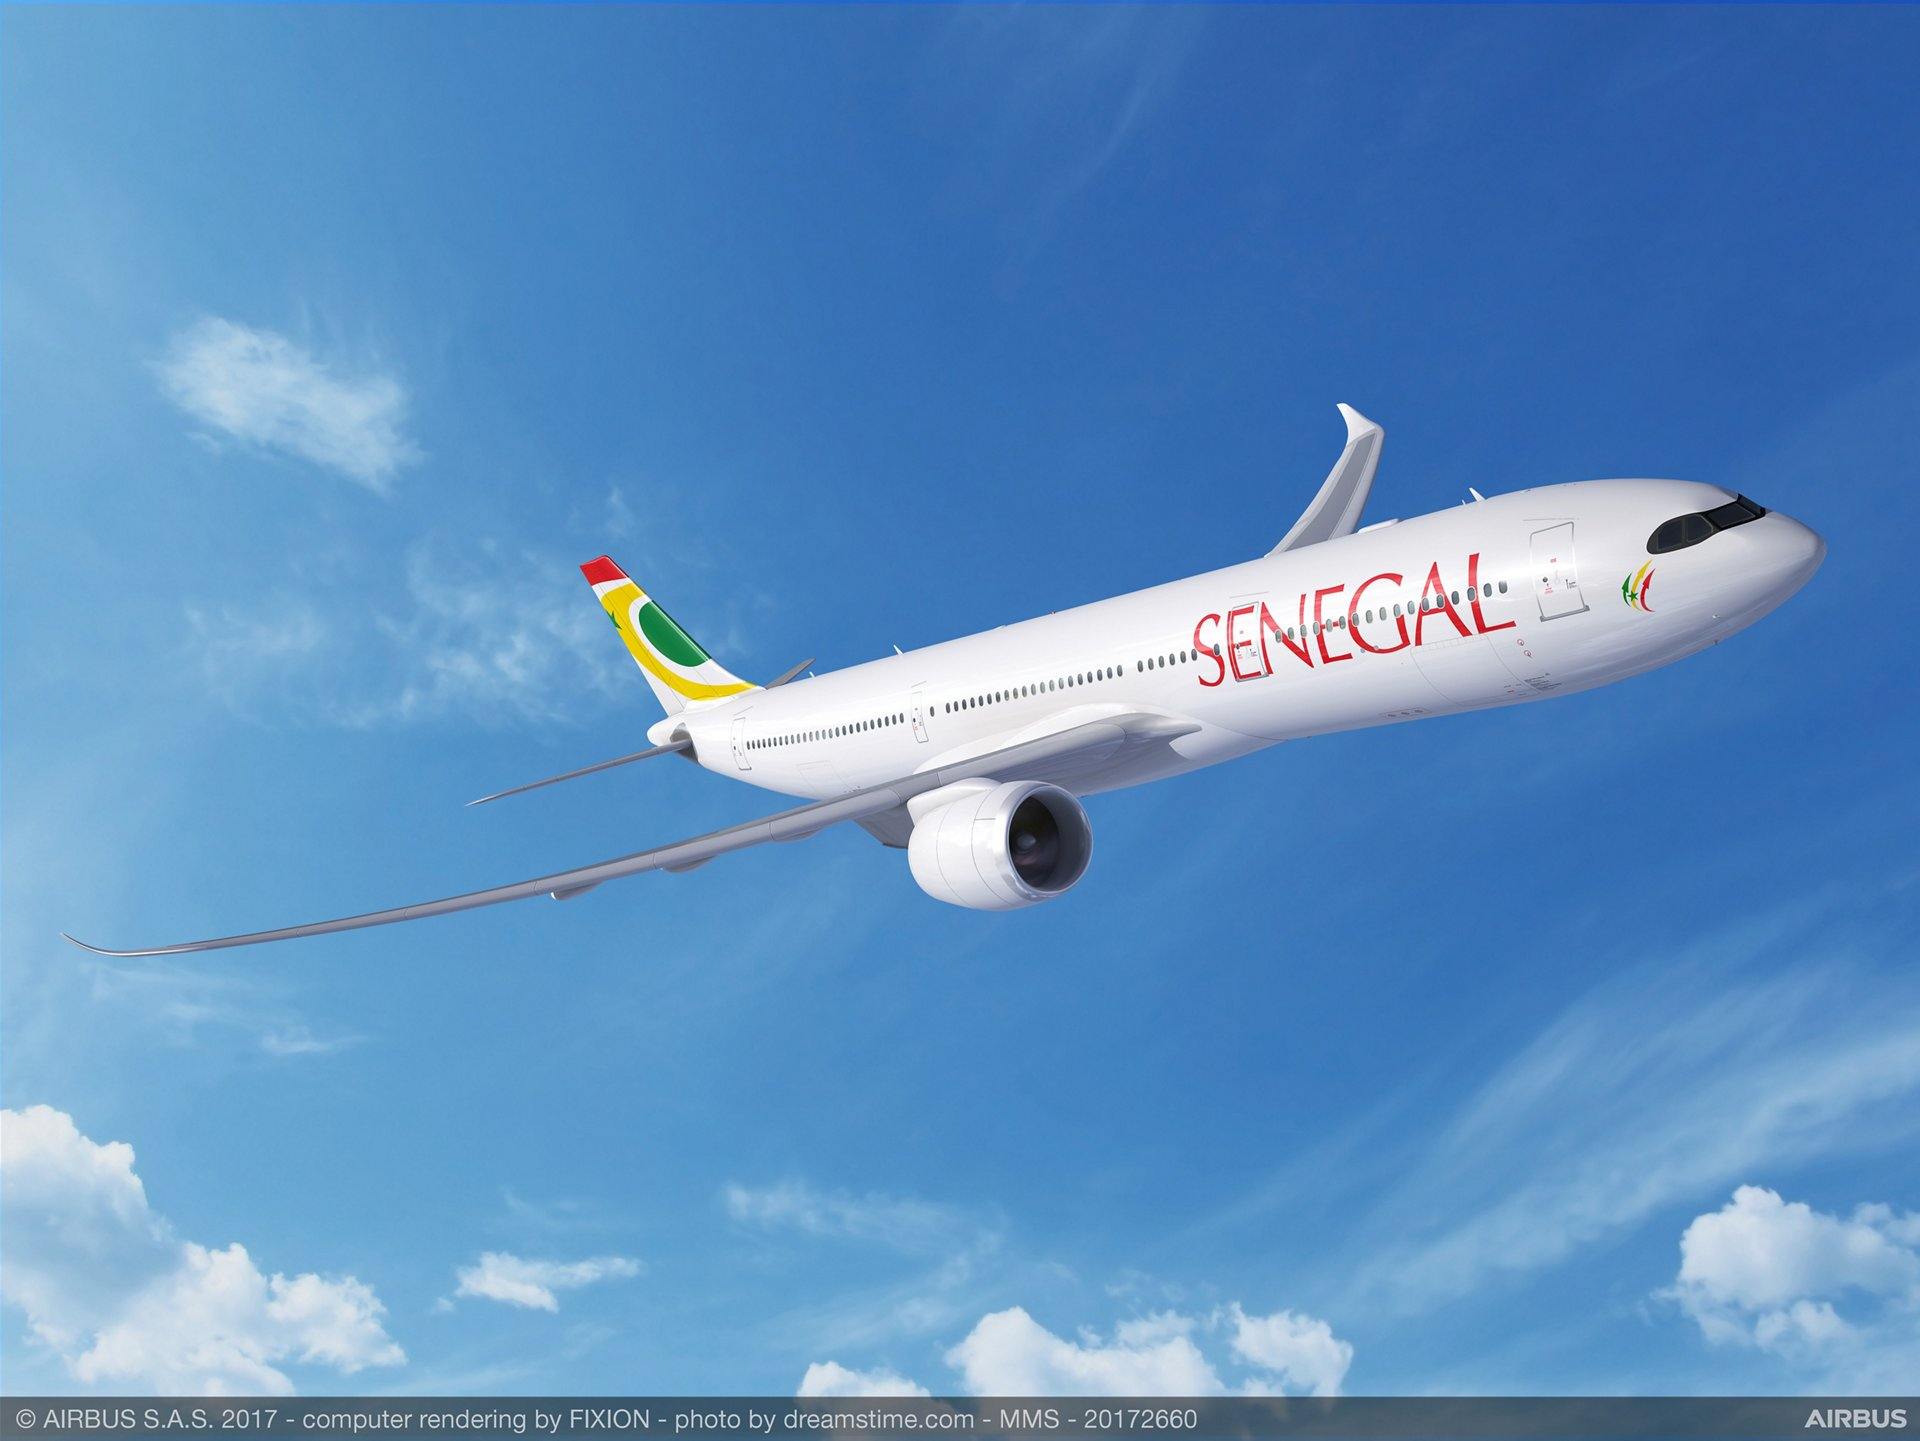 Following a Memorandum of Understanding signed at the 2017 Dubai Airshow, Air Sénégal today signed a firm order for two A330neo widebody jetliners, becoming the first African airline to select the A330neo